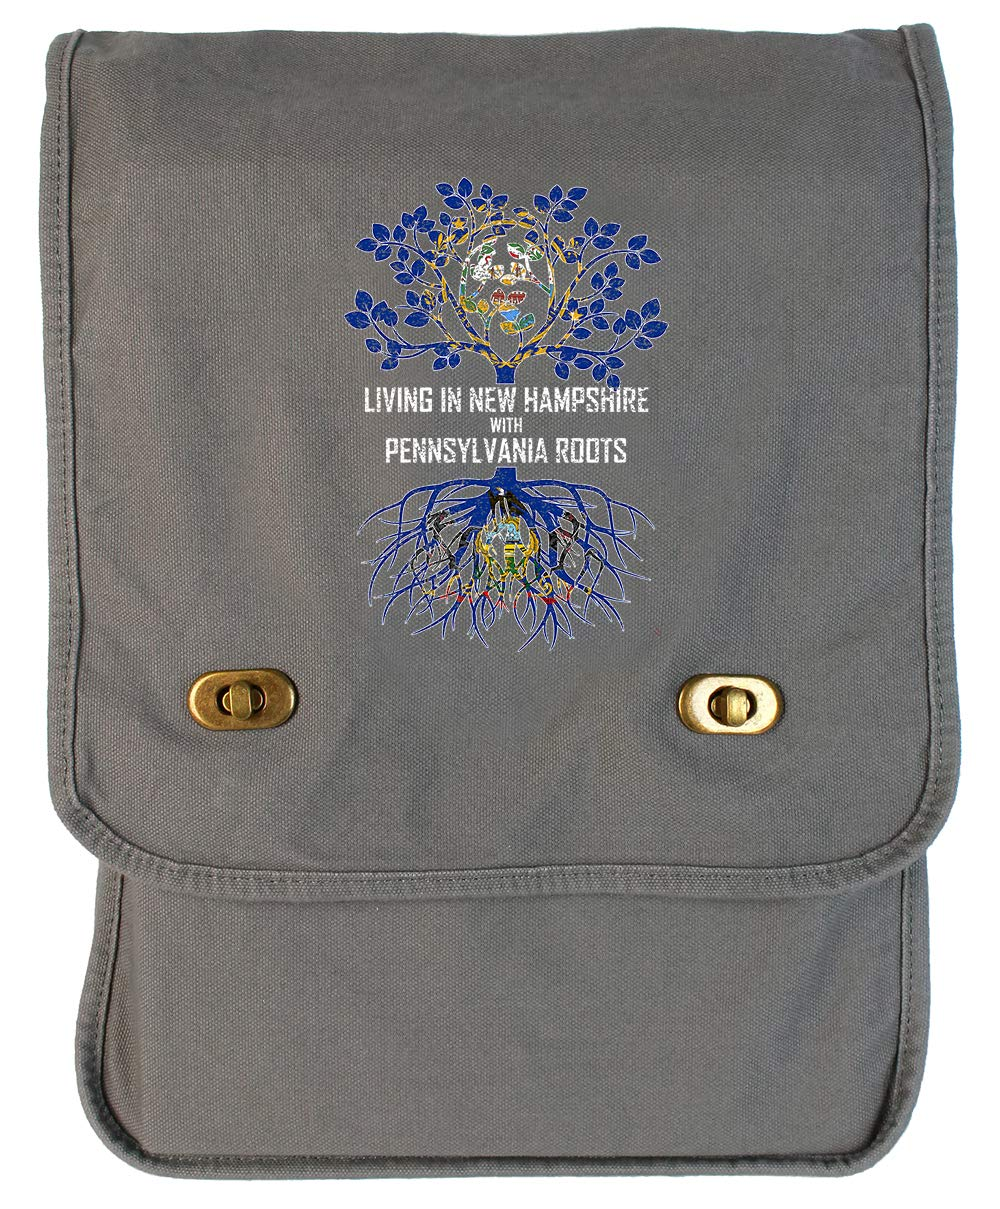 Tenacitee Living In New Hampshire with Pennsylvania Roots Grey Brushed Canvas Messenger Bag